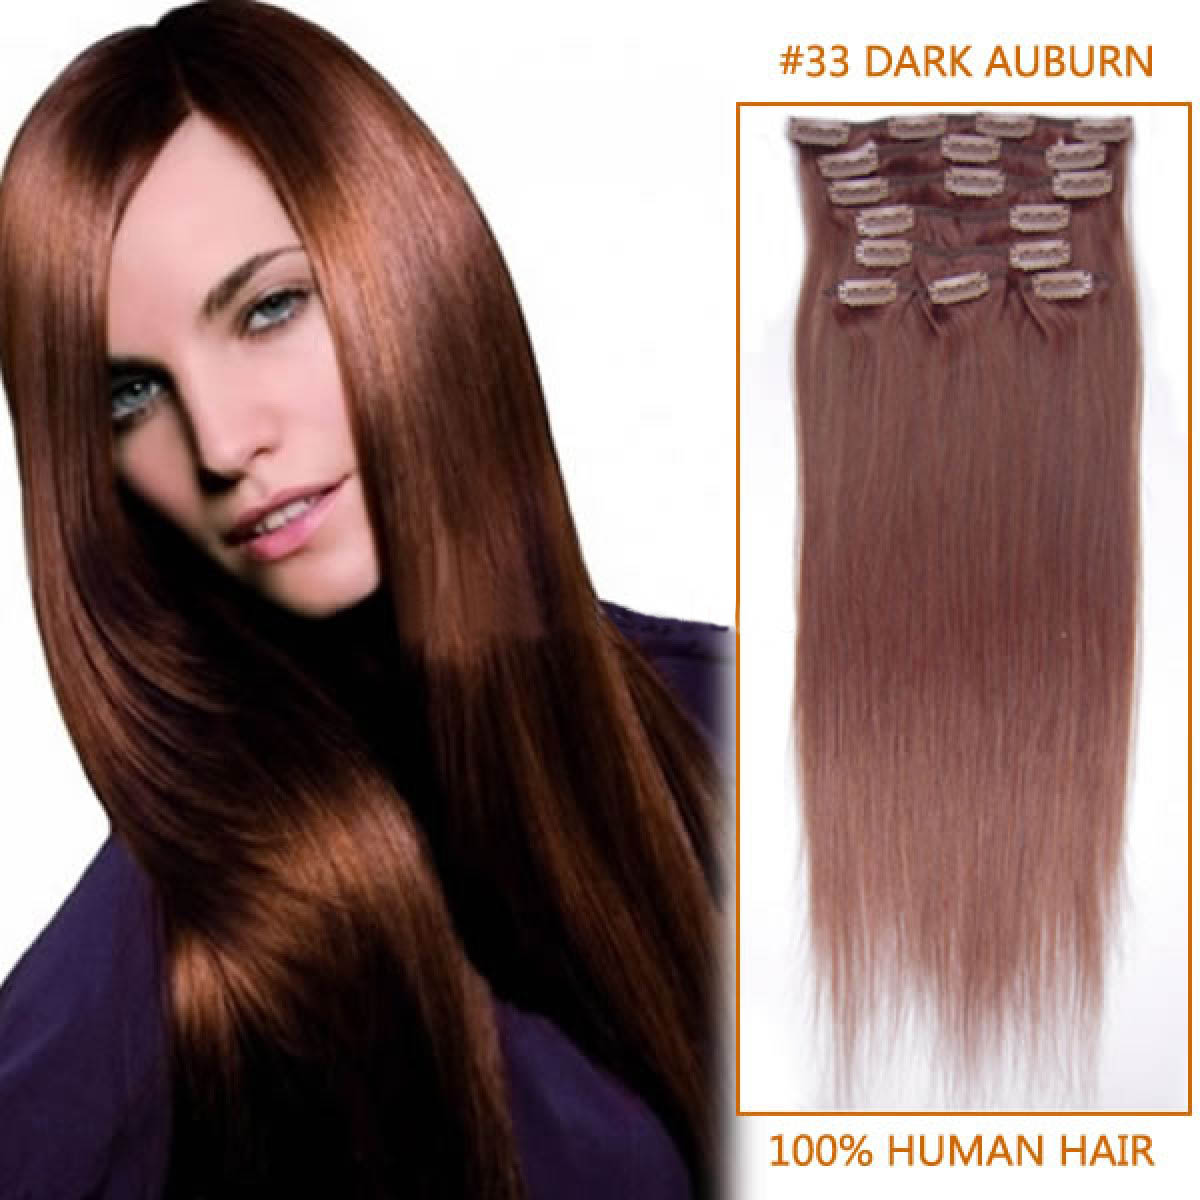 Inch 33 dark auburn clip in remy human hair extensions 7pcs 24 inch 33 dark auburn clip in remy human hair extensions 7pcs pmusecretfo Image collections